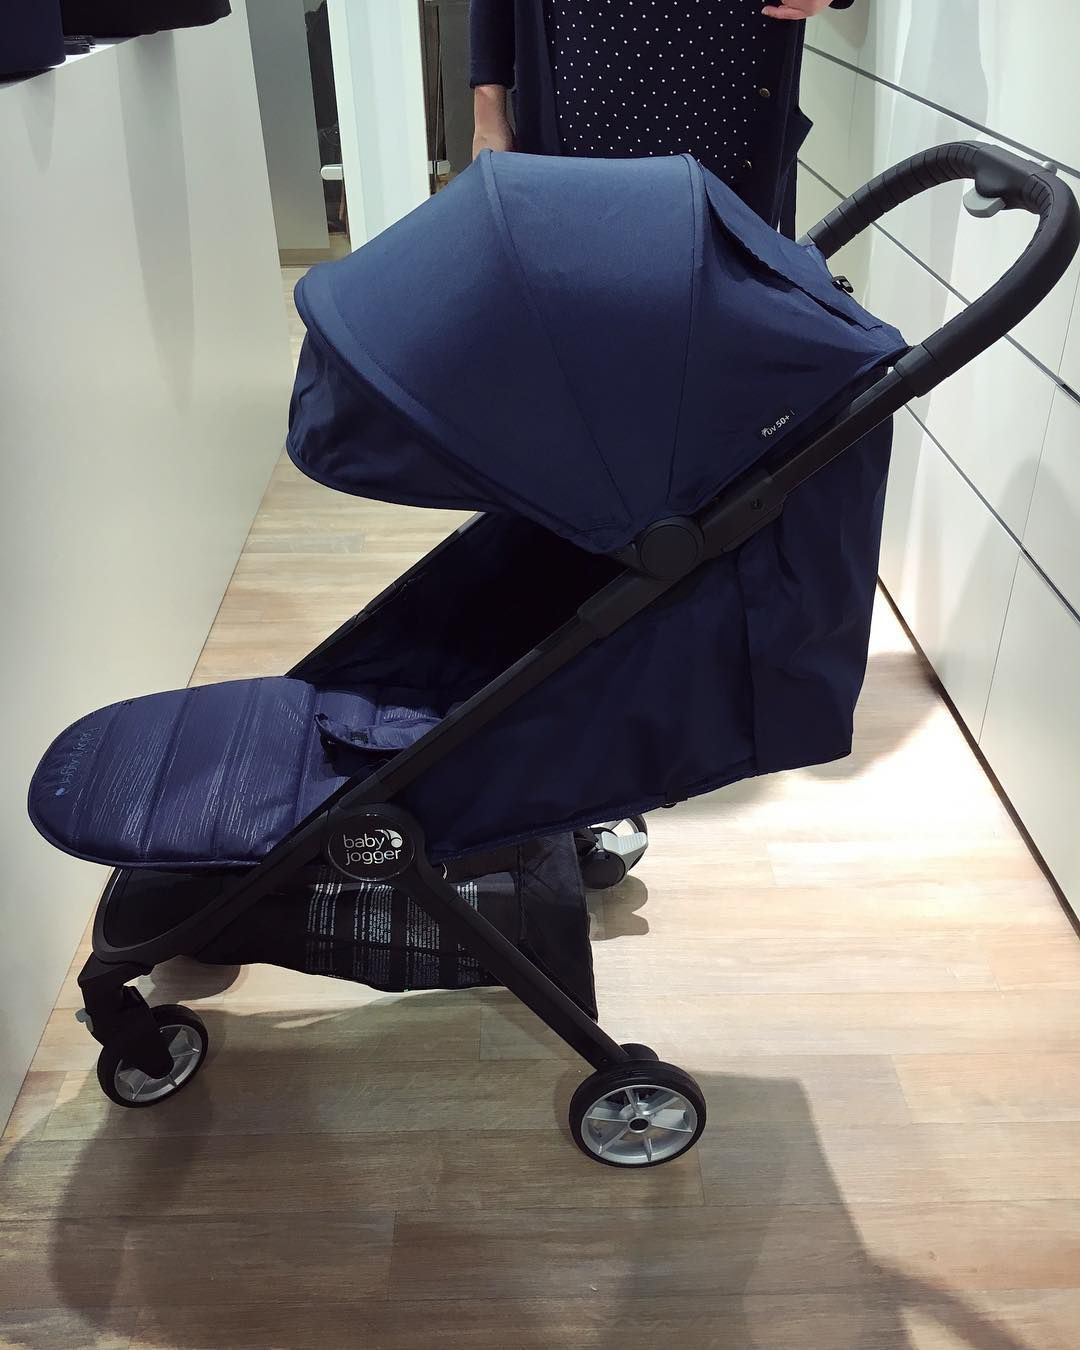 Will the new Baby Jogger City Tour 2 have deeper seat